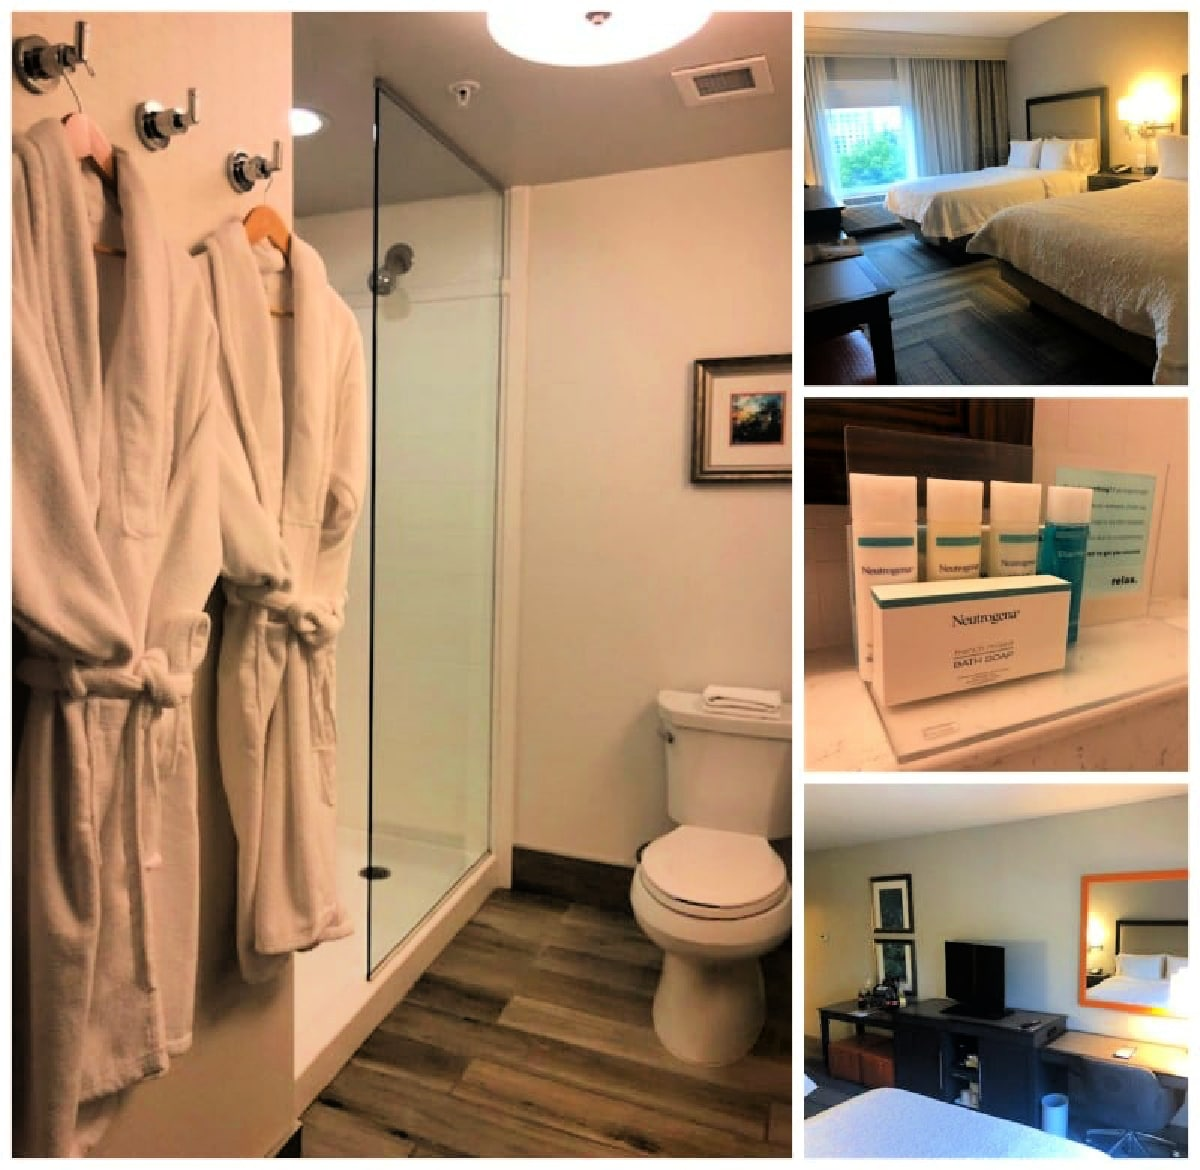 The Hampton Inn & Suites by Hilton is the perfect place to stay during your girls' getaway in Dunwoody, Georgia.